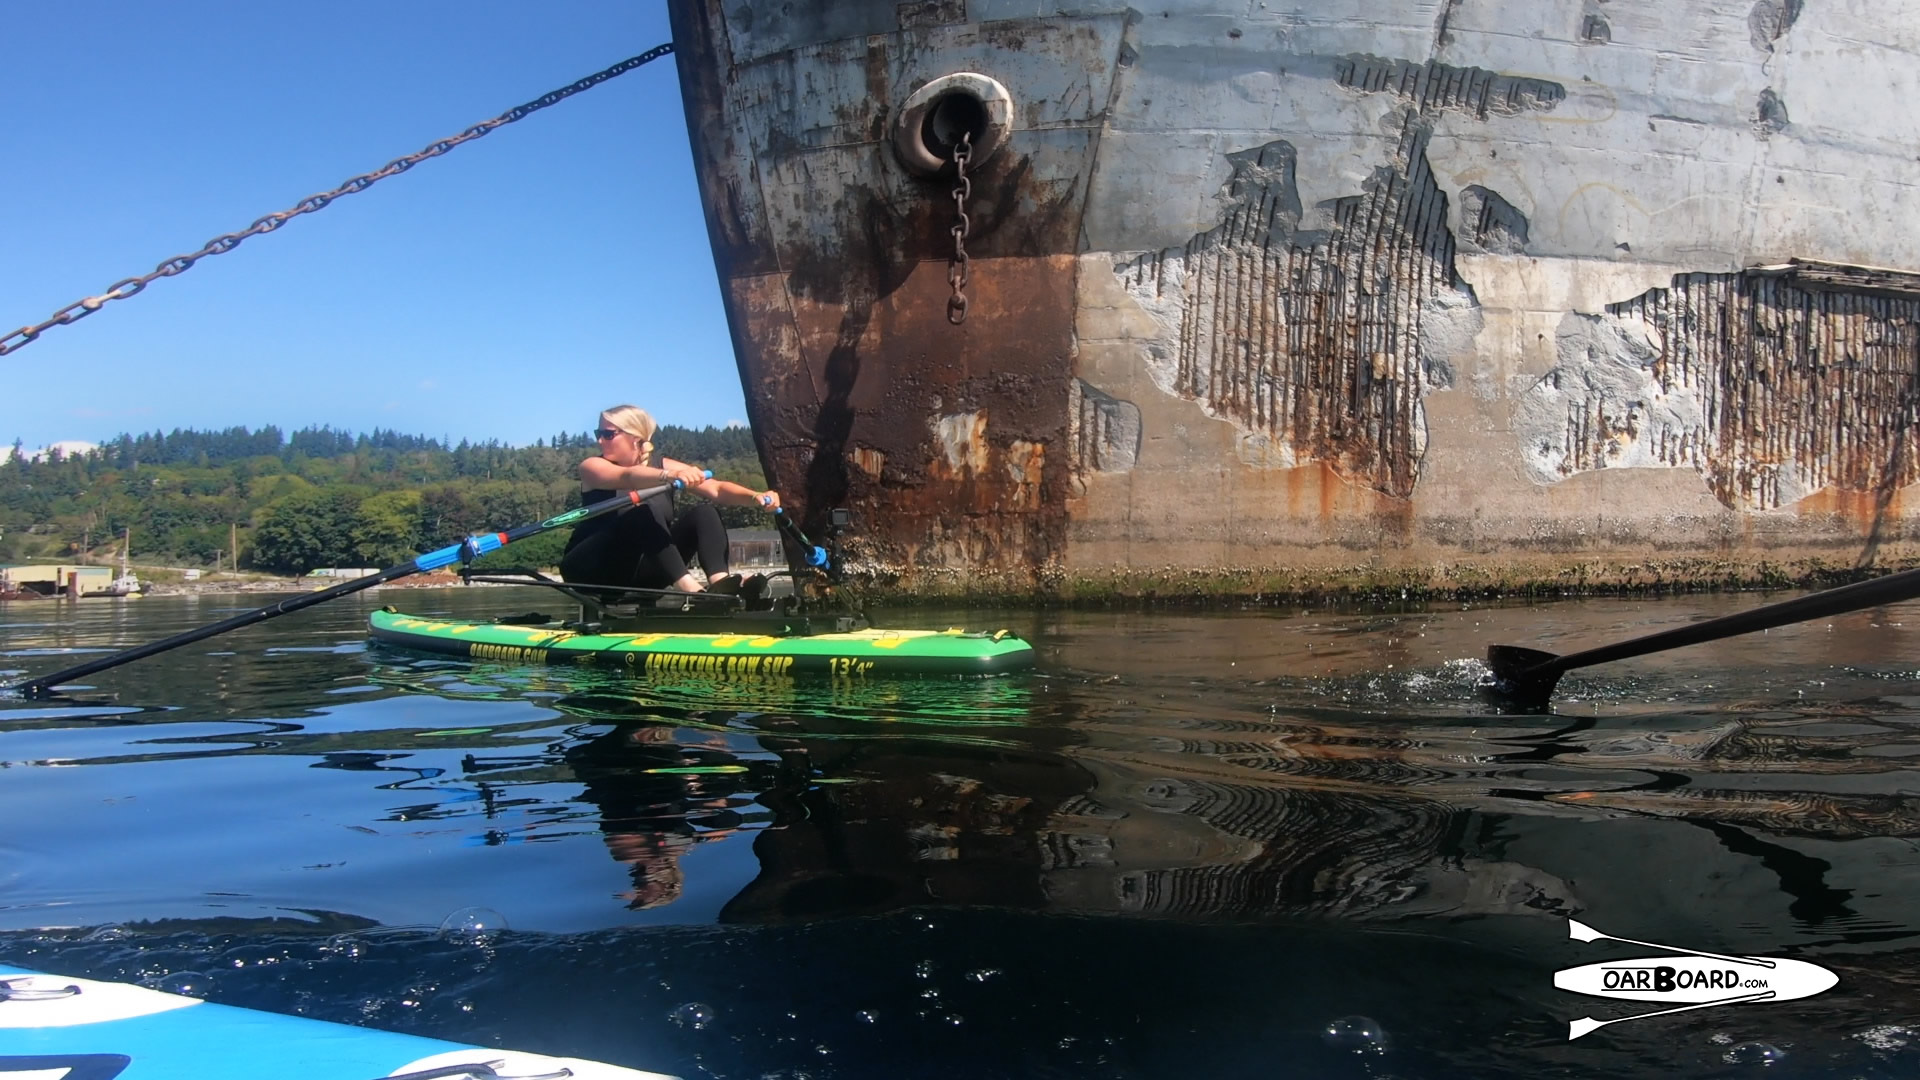 Campbell River Breakwater Rowing, WWII Hulk Ships, Oar Board Stand Up Paddle Boards